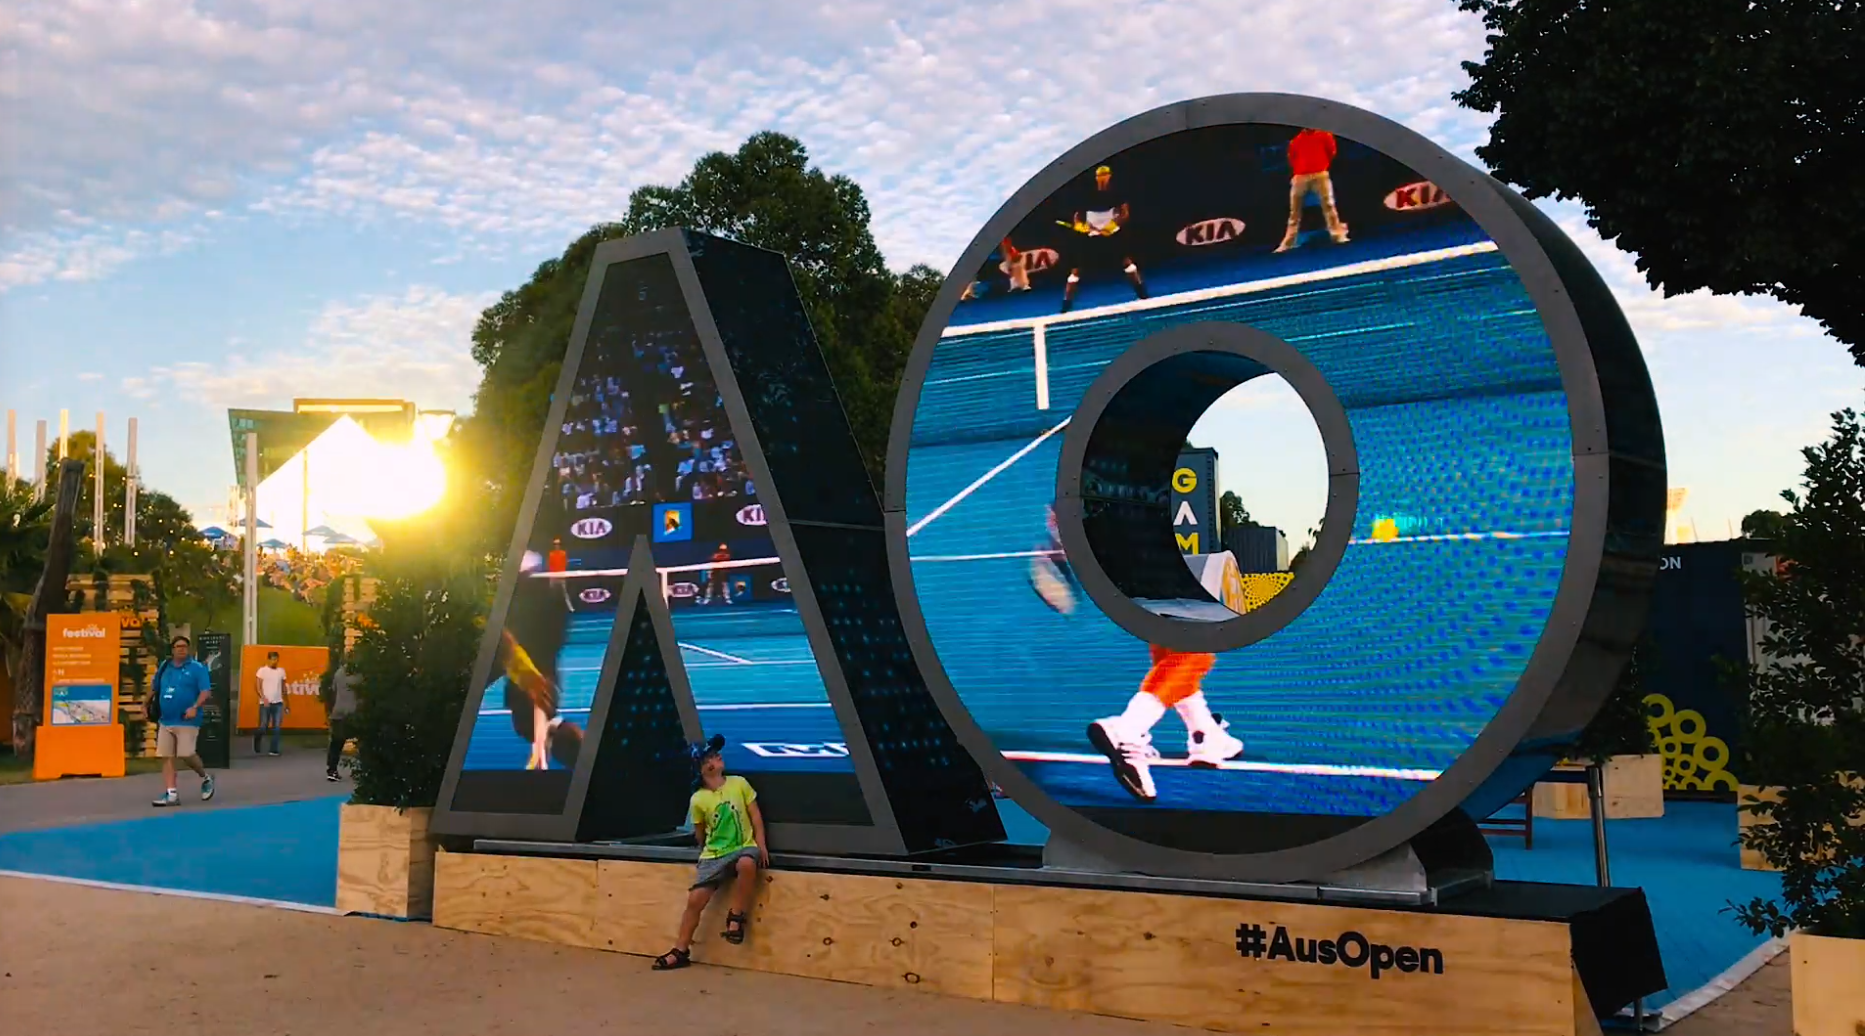 Australian Open Installation for Local Brands